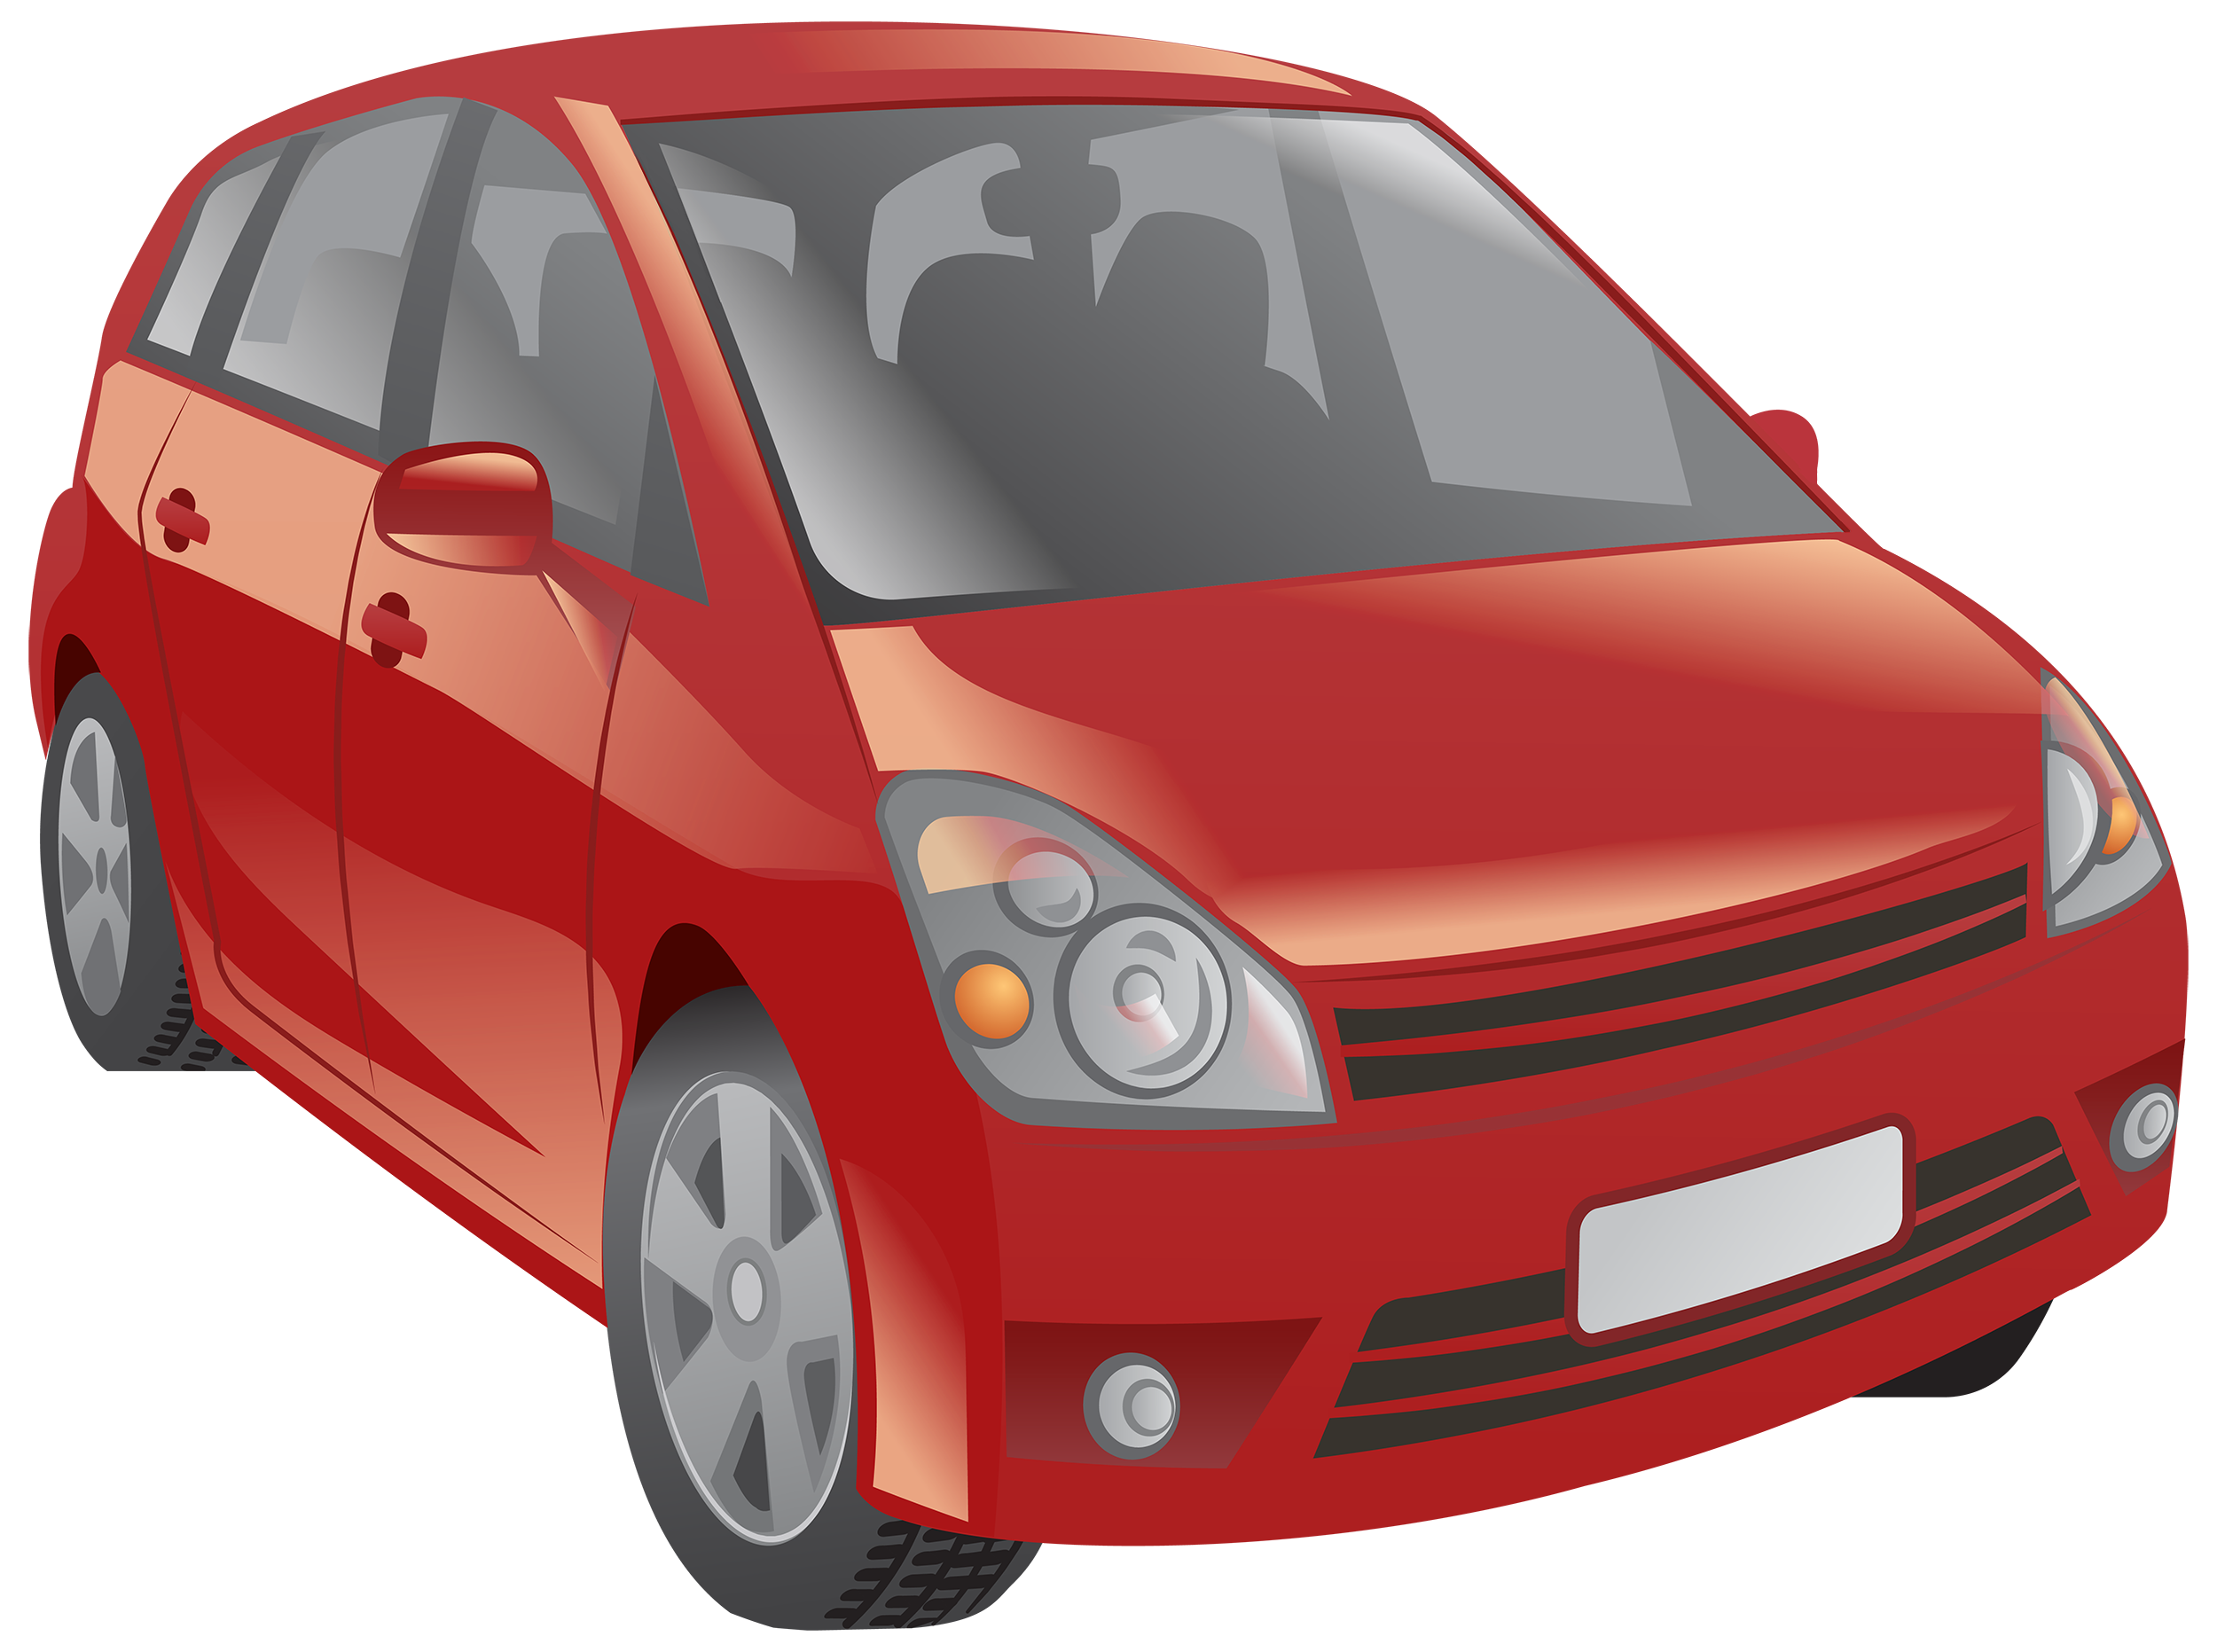 Red cars clipart svg black and white download Red Car PNG Clipart - Best WEB Clipart svg black and white download